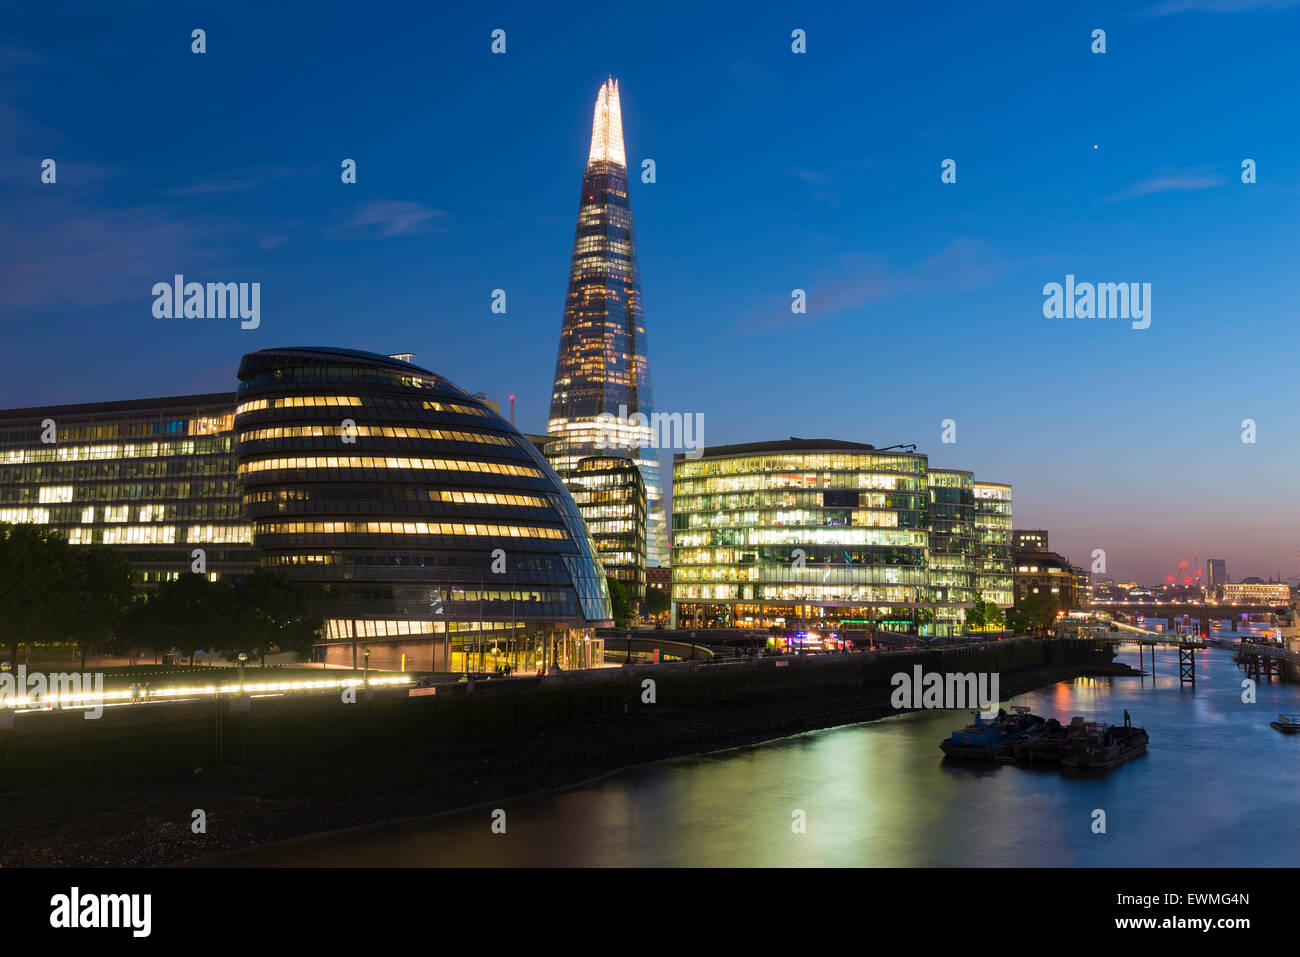 Le gratte-ciel Shard, Thames, London, England, United Kingdom Photo Stock